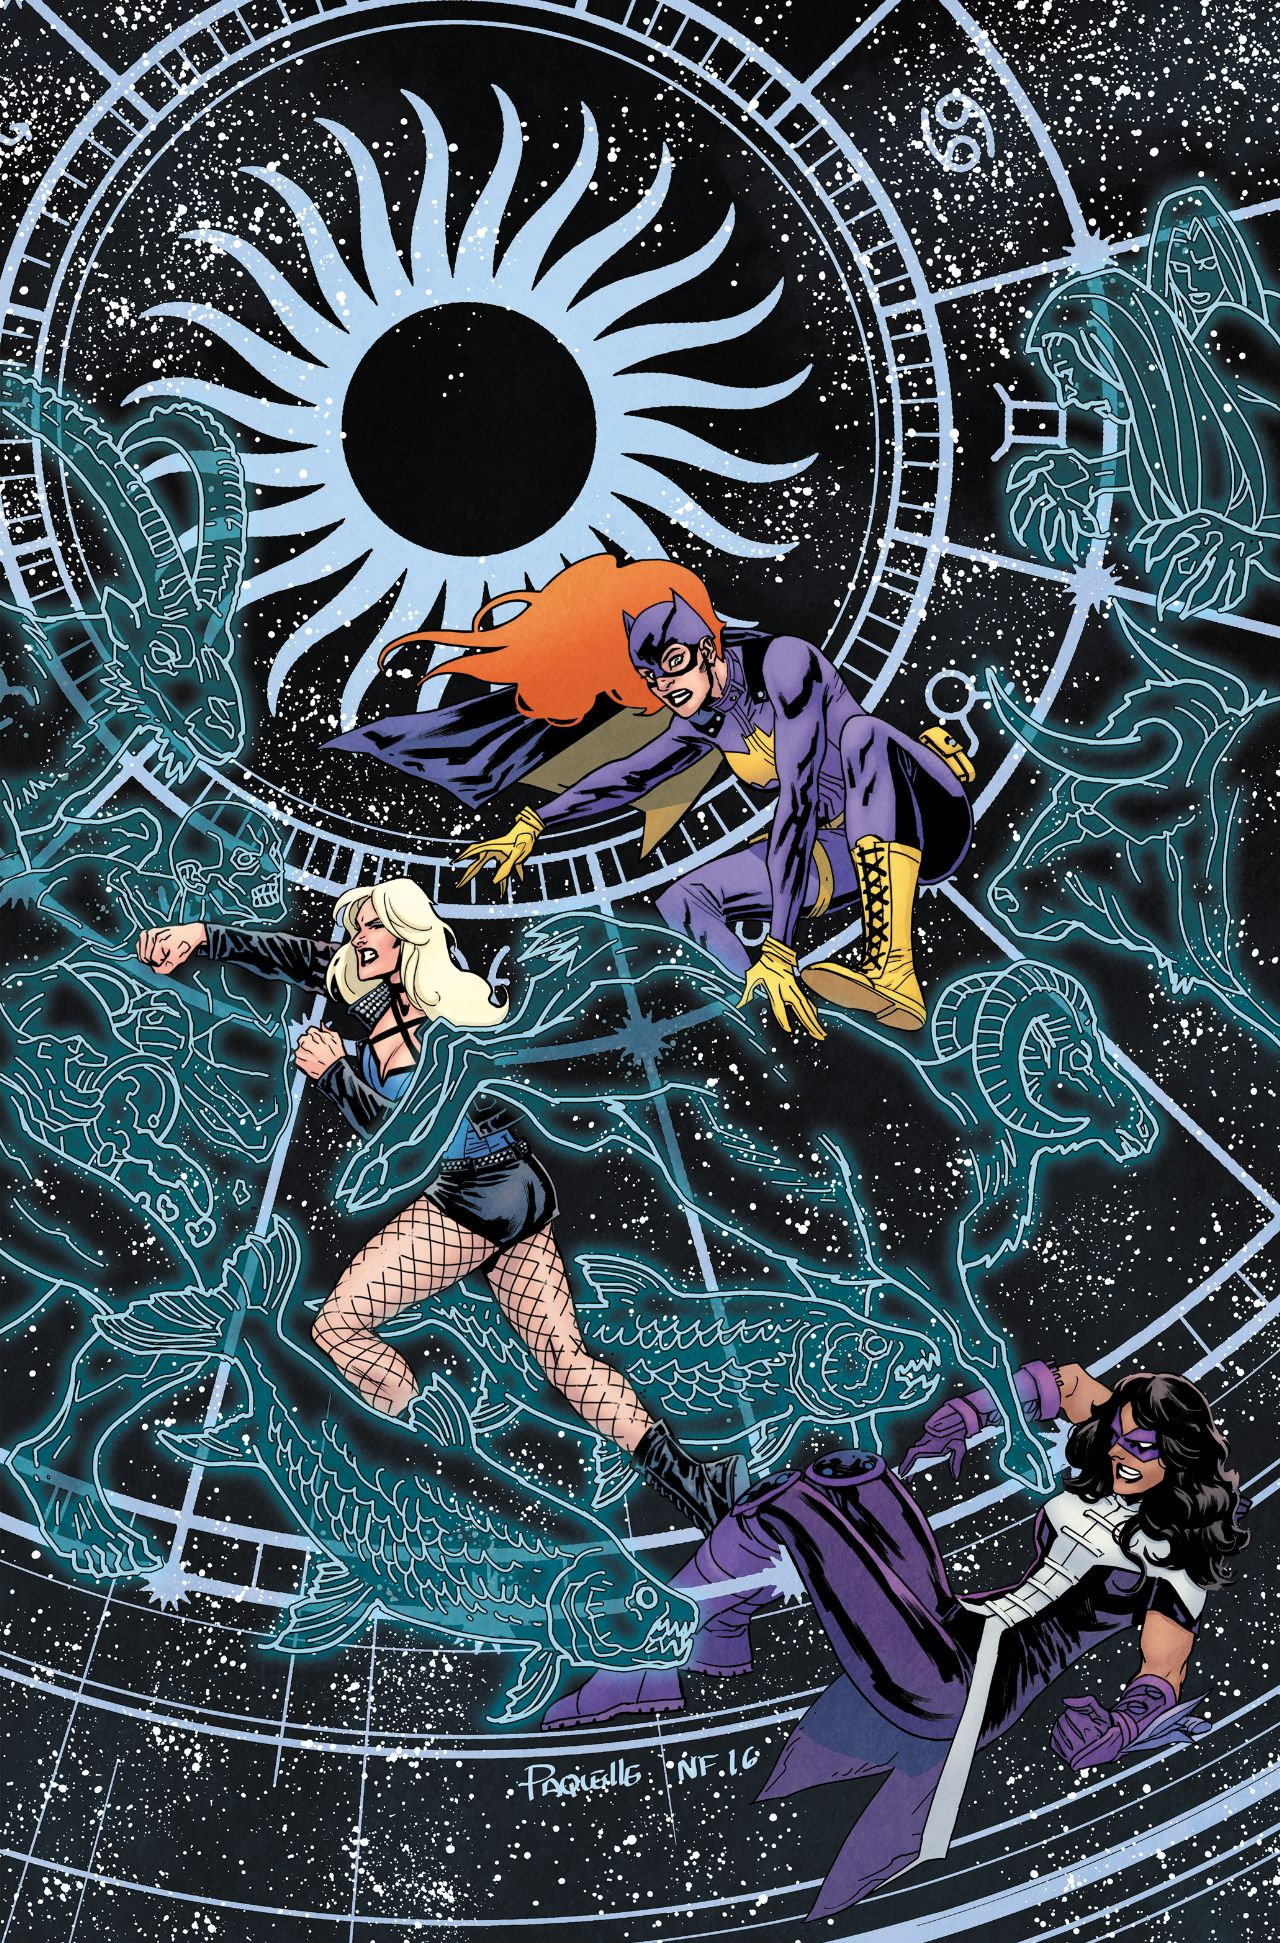 Batgirl and the Birds of Prey Vol 1 7 Textless.jpg